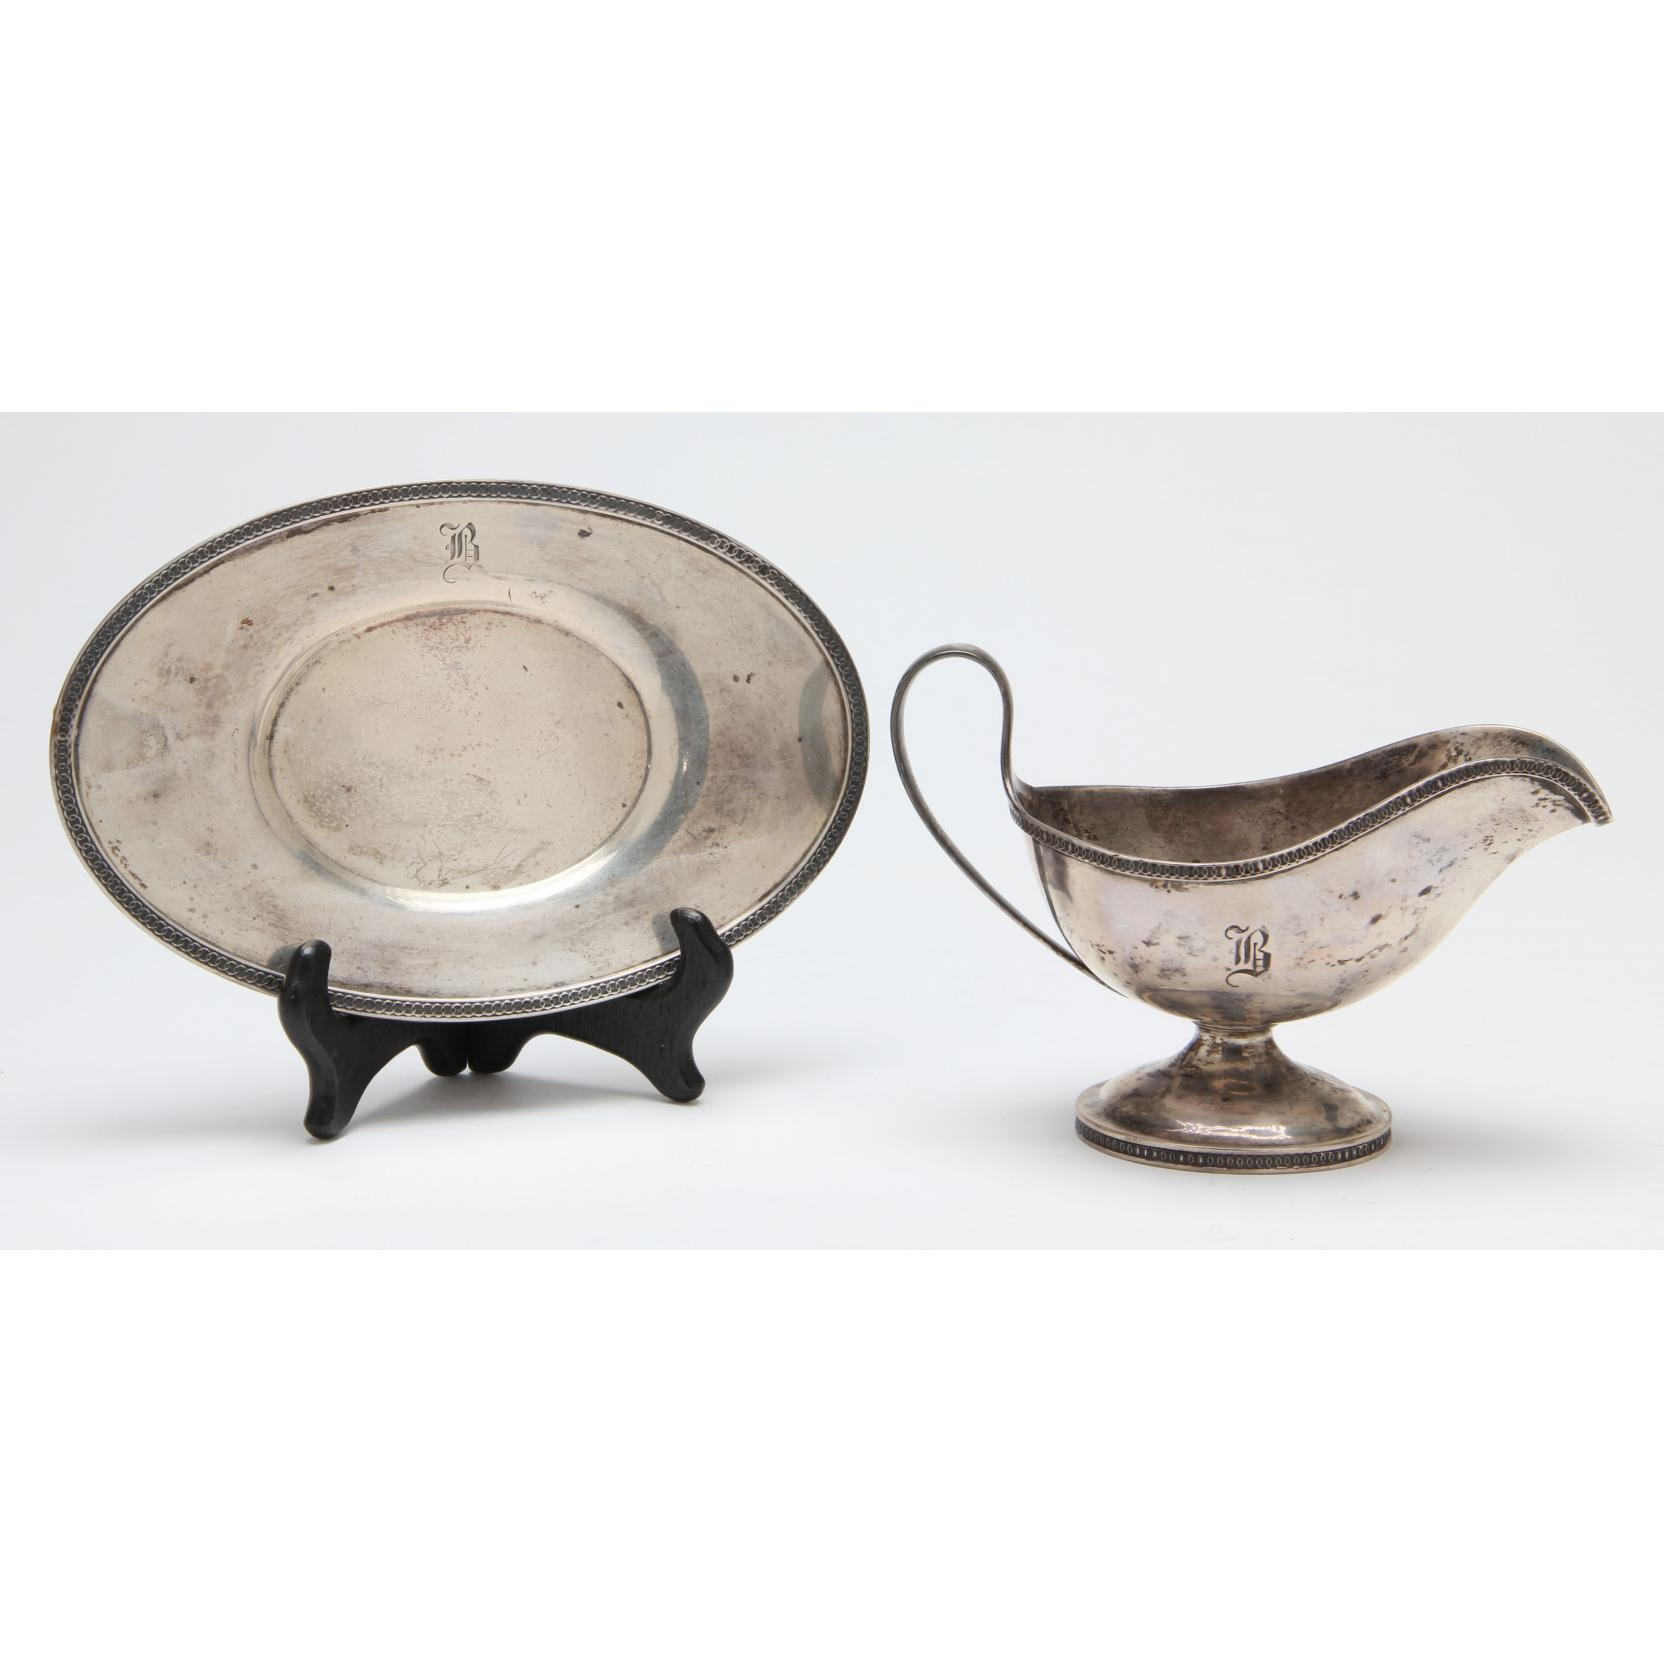 s-kirk-son-sterling-silver-gravy-boat-and-tray